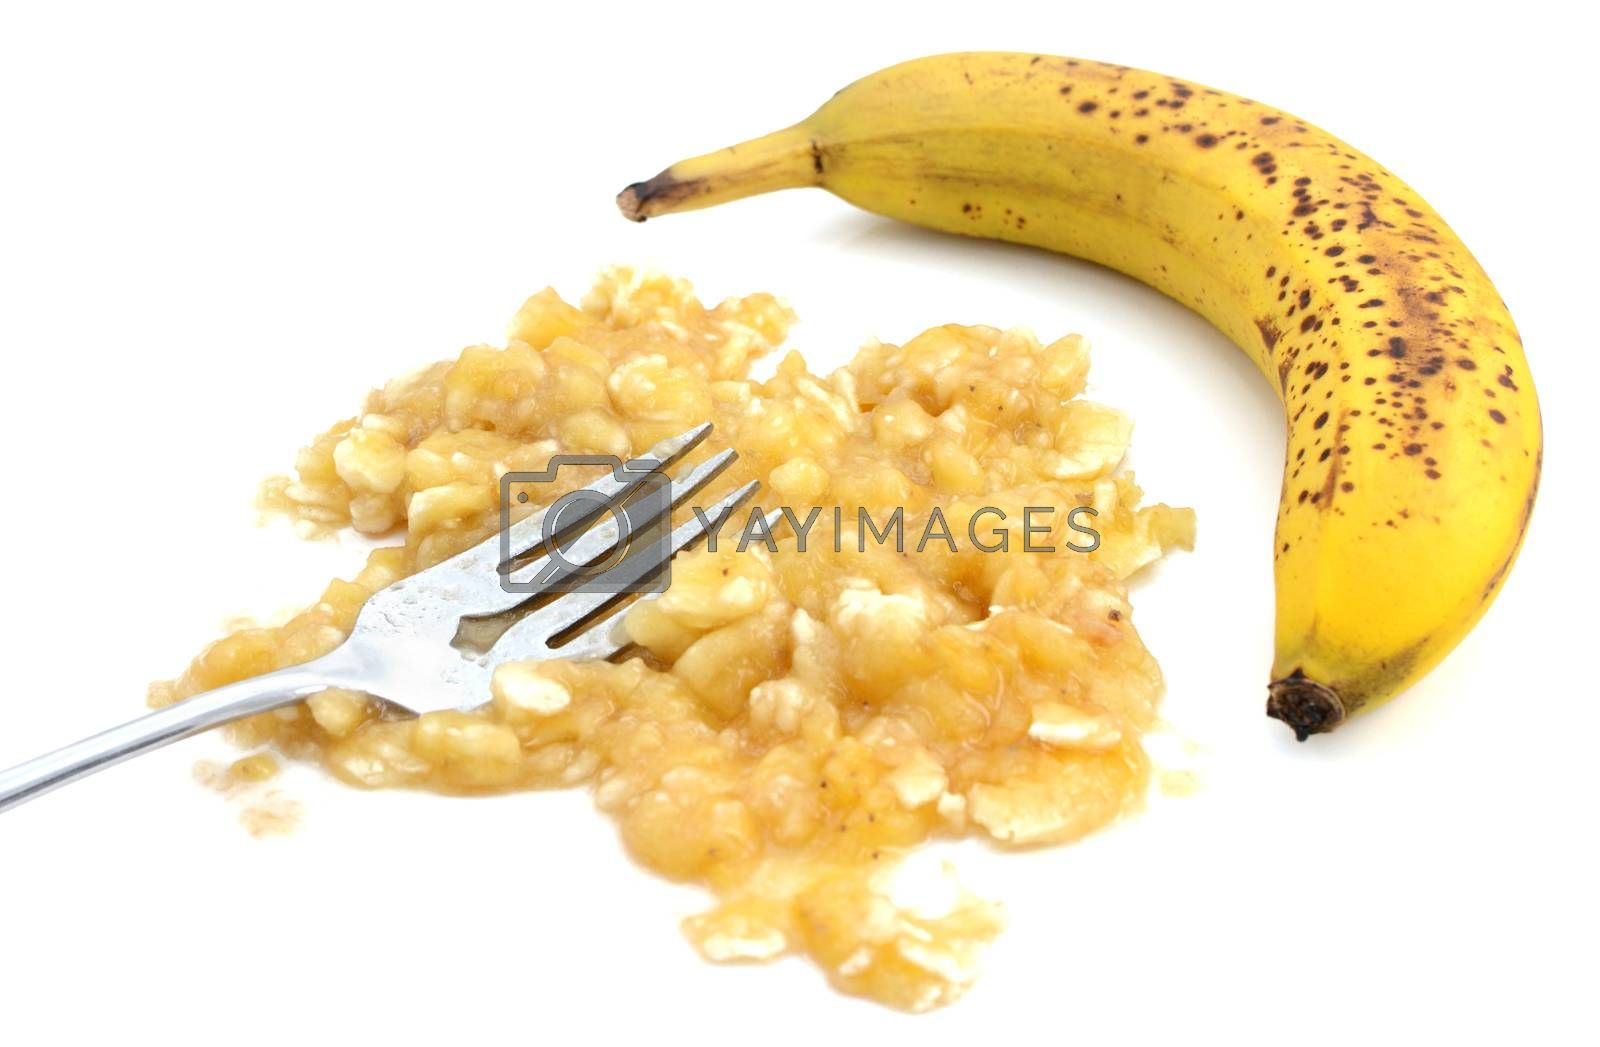 Closeup of mashed banana with fork and an unpeeled fruit by sarahdoow